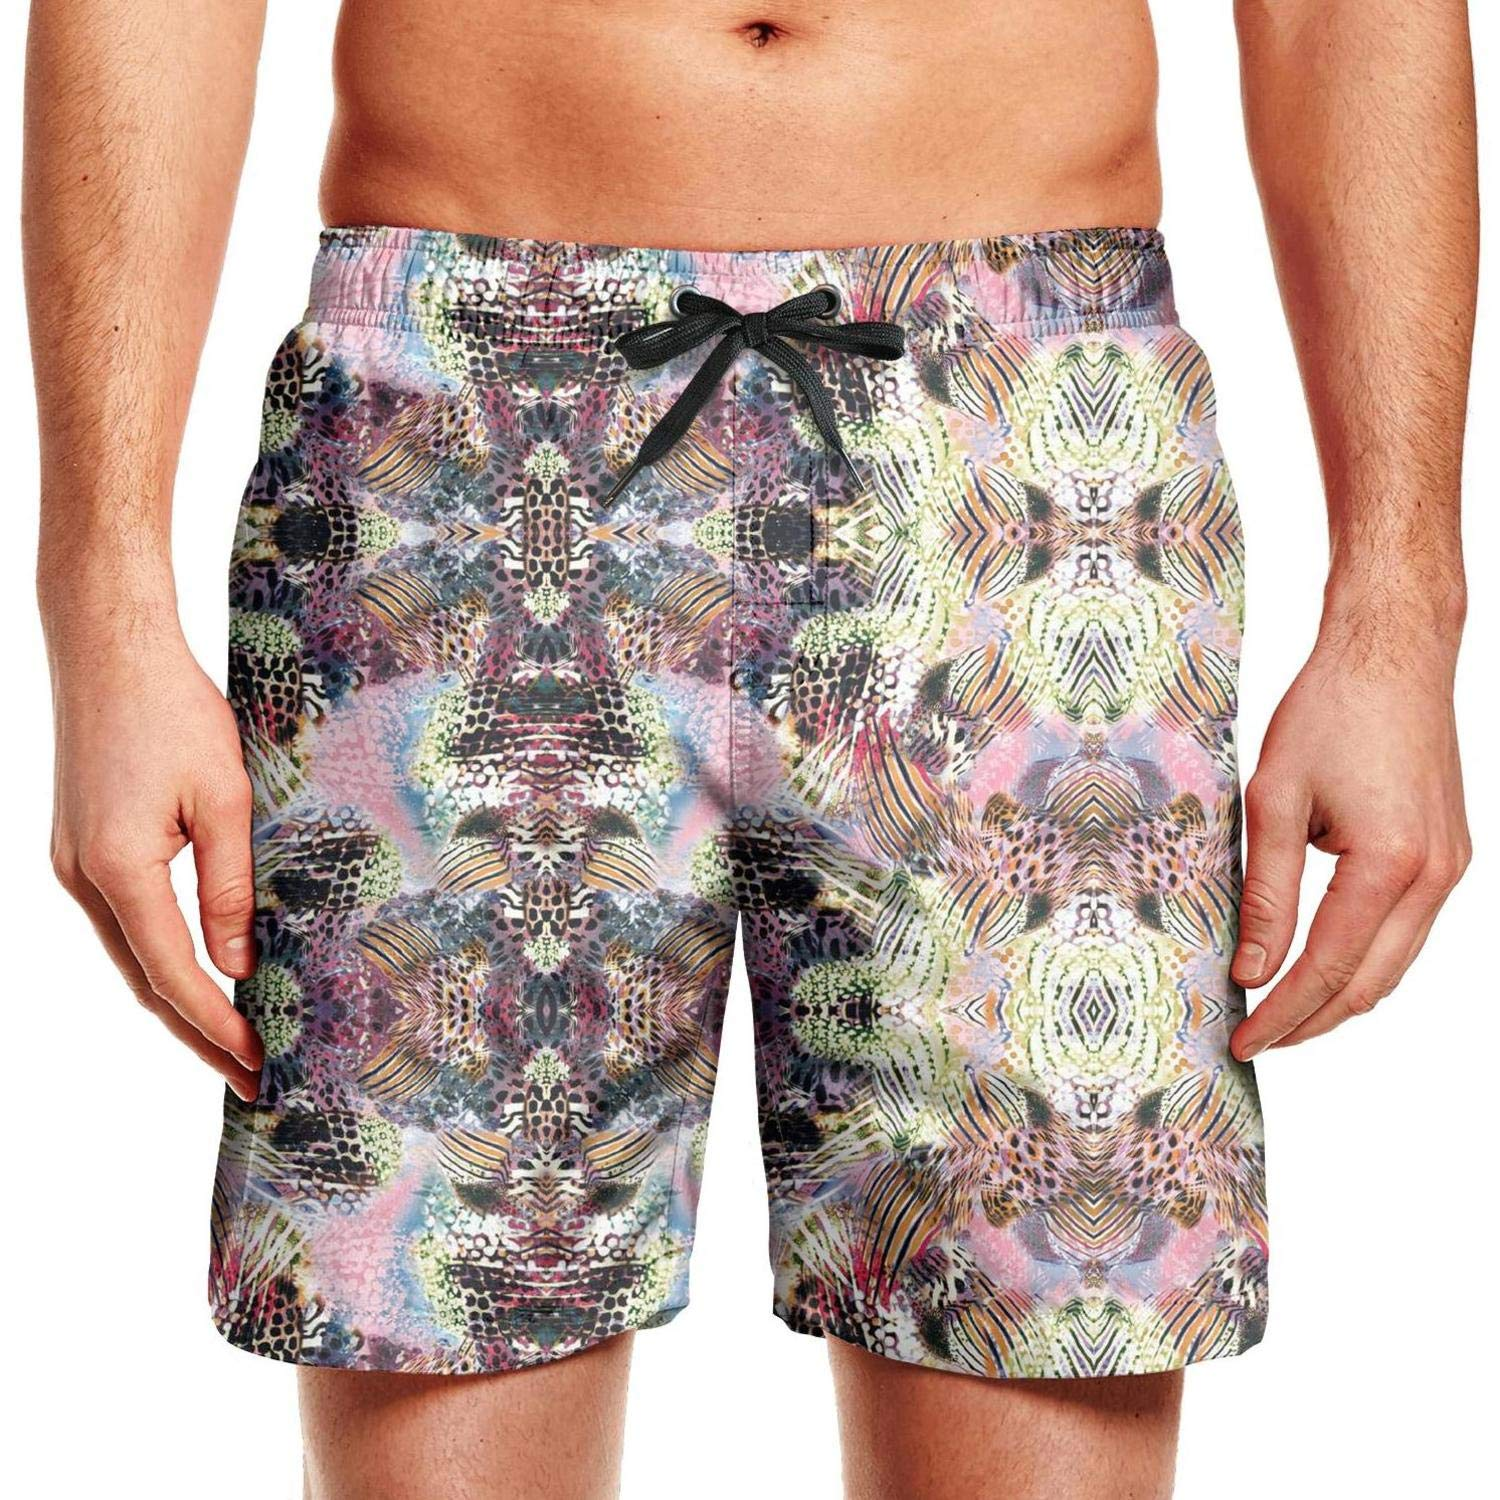 KIENENG Leopard Cheetah Print Ink Black Yellow Mens Beach Shorts Running Elastic Board Shorts